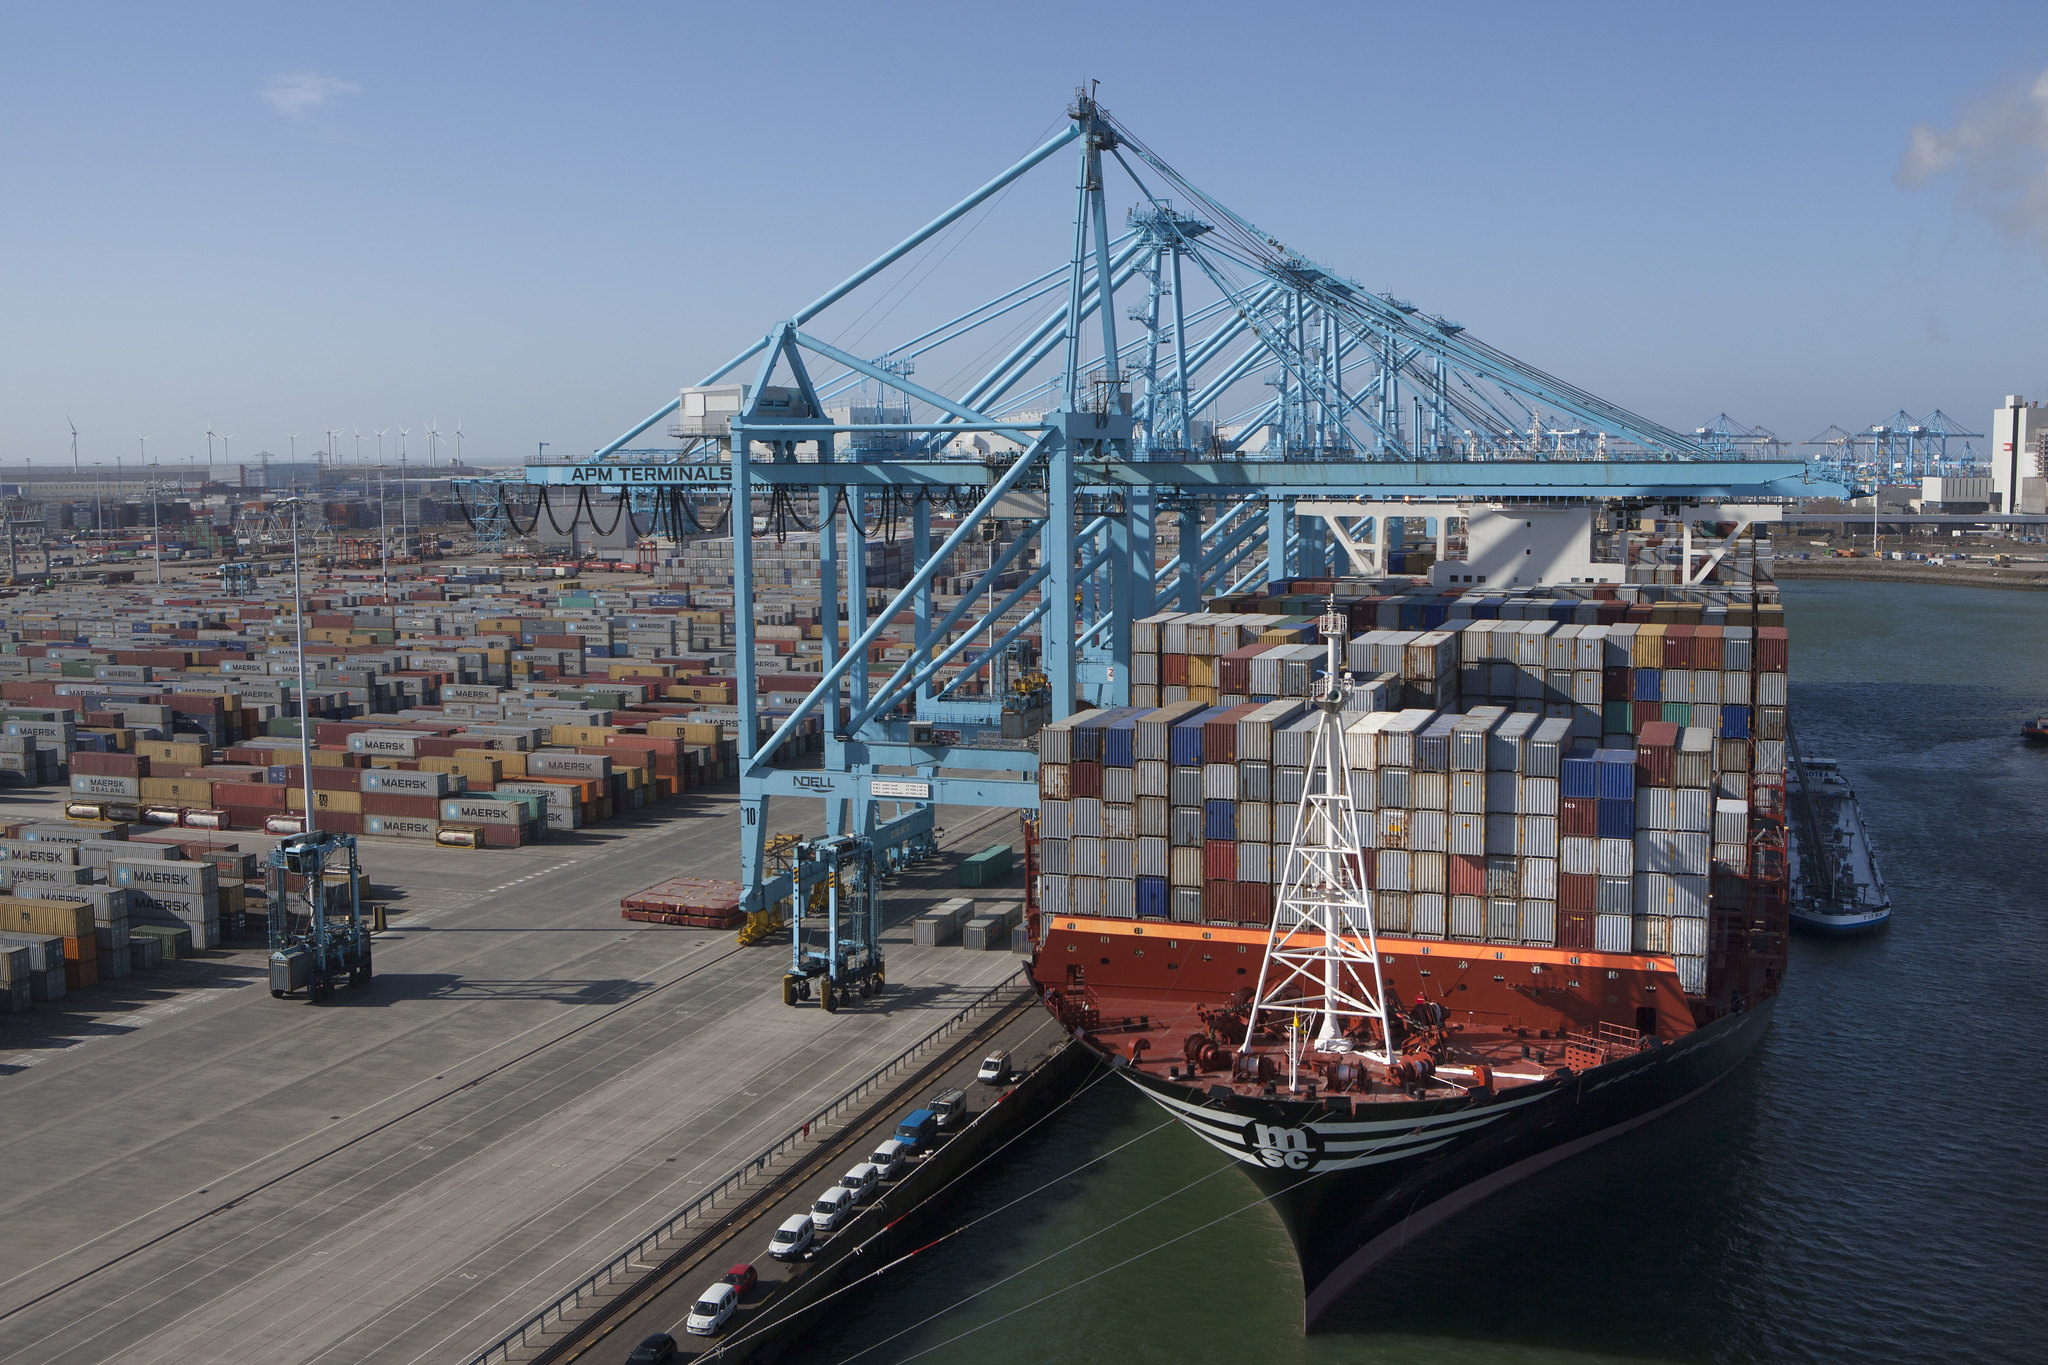 APMT plans to double the capacity of its Maasvlakte 2 terminal